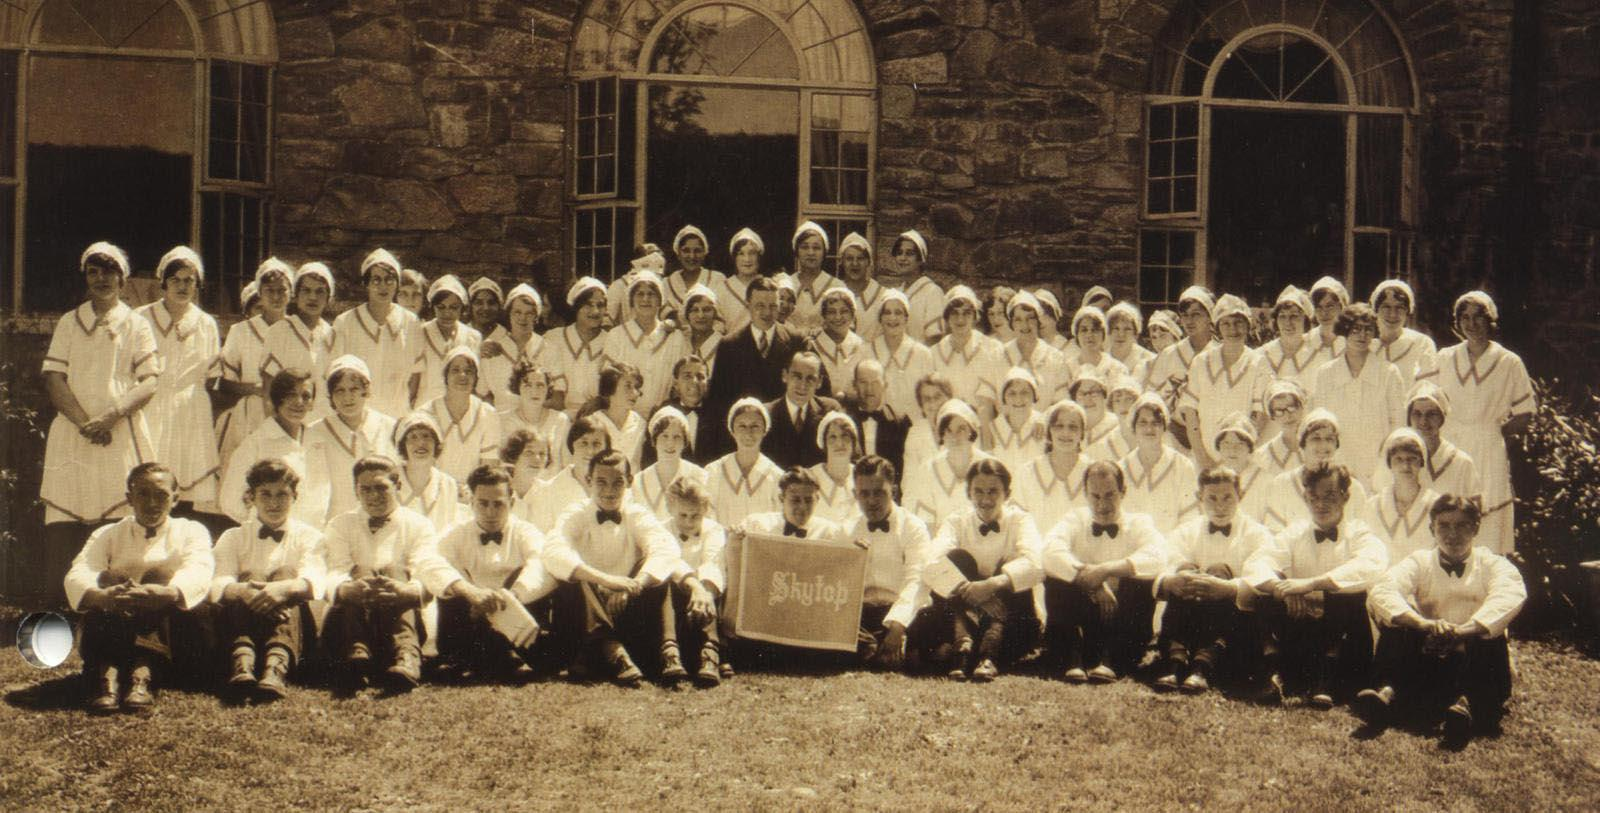 Historic Image of Staff Outside Skytop Lodge, 1928, Member of Historic Hotels of America, Skytop, Pennsylvania, Discover